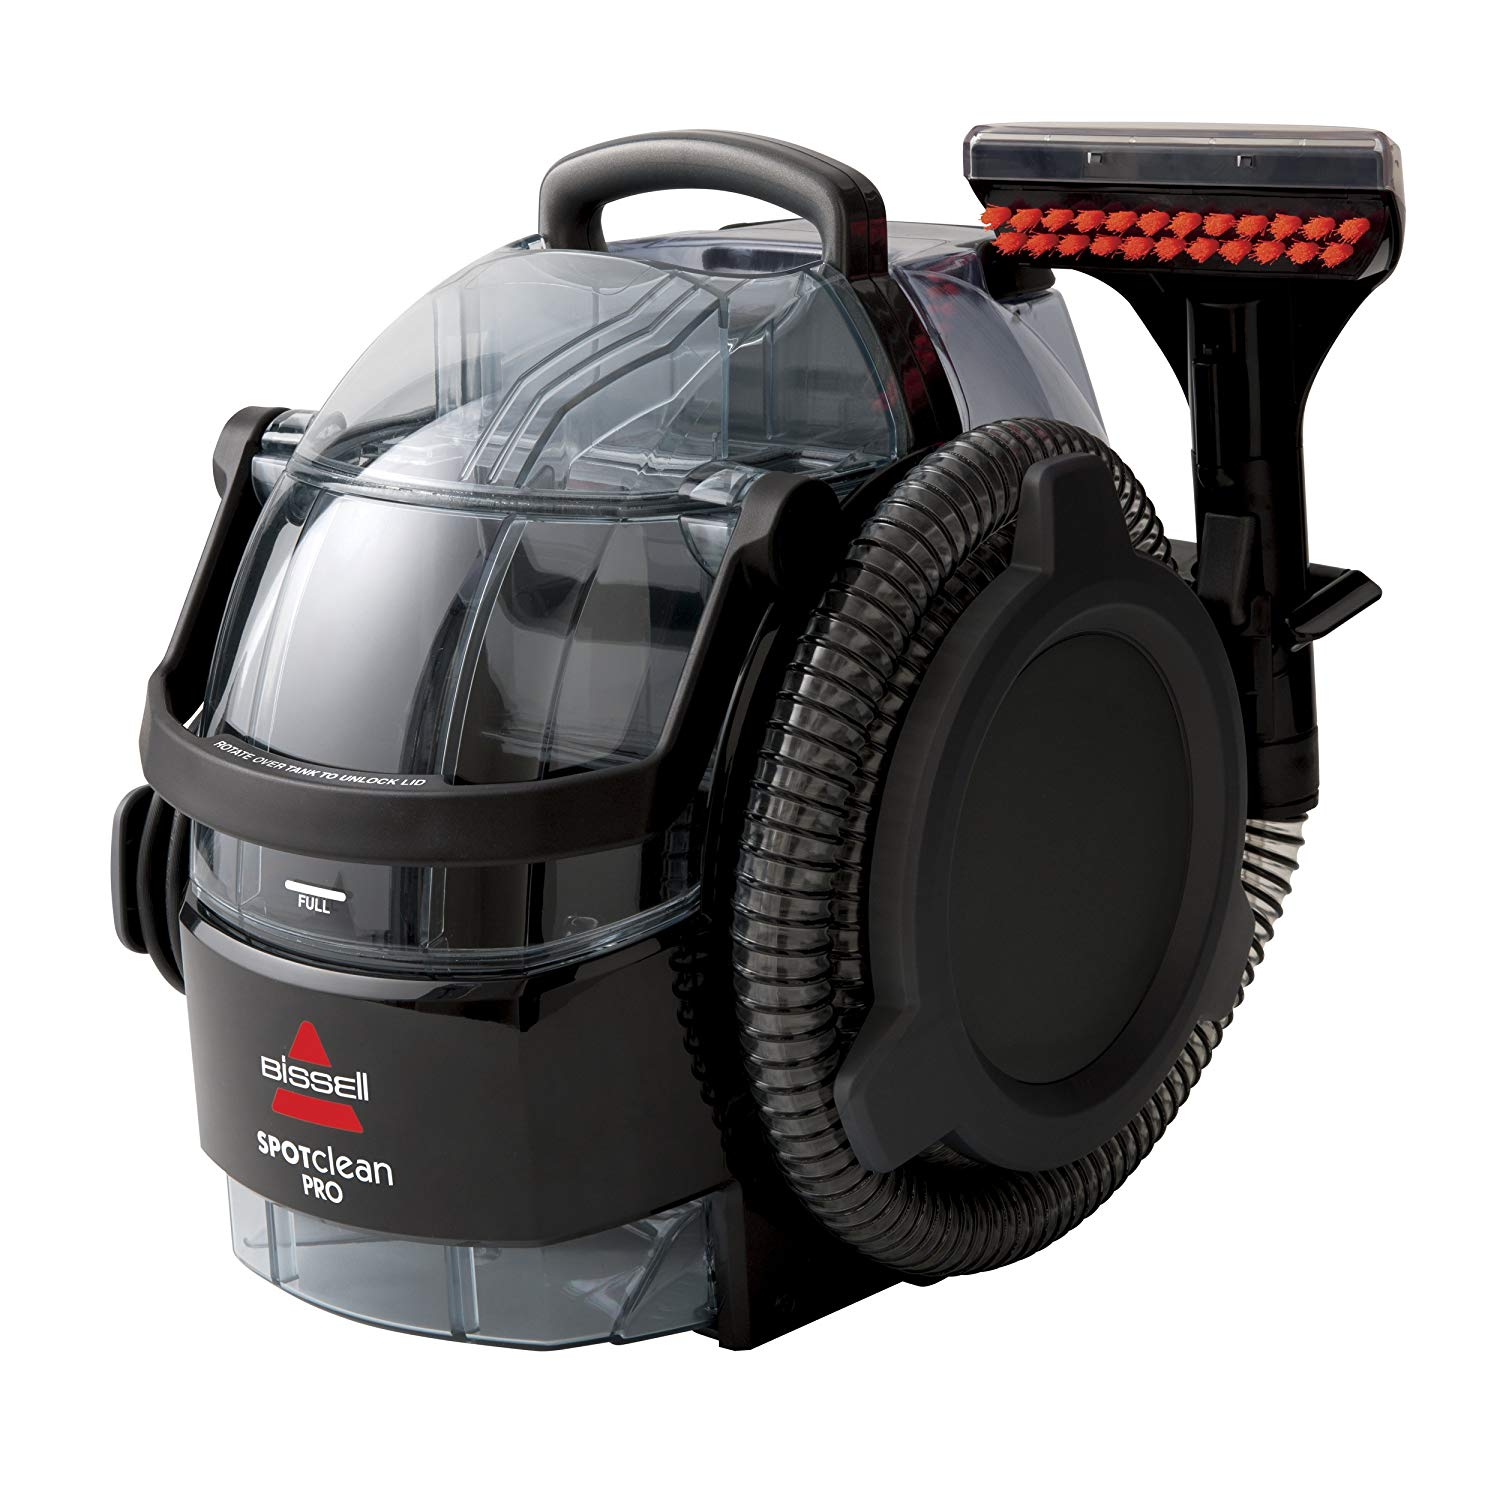 Bissell 3624 Portable Carpet Cleaner